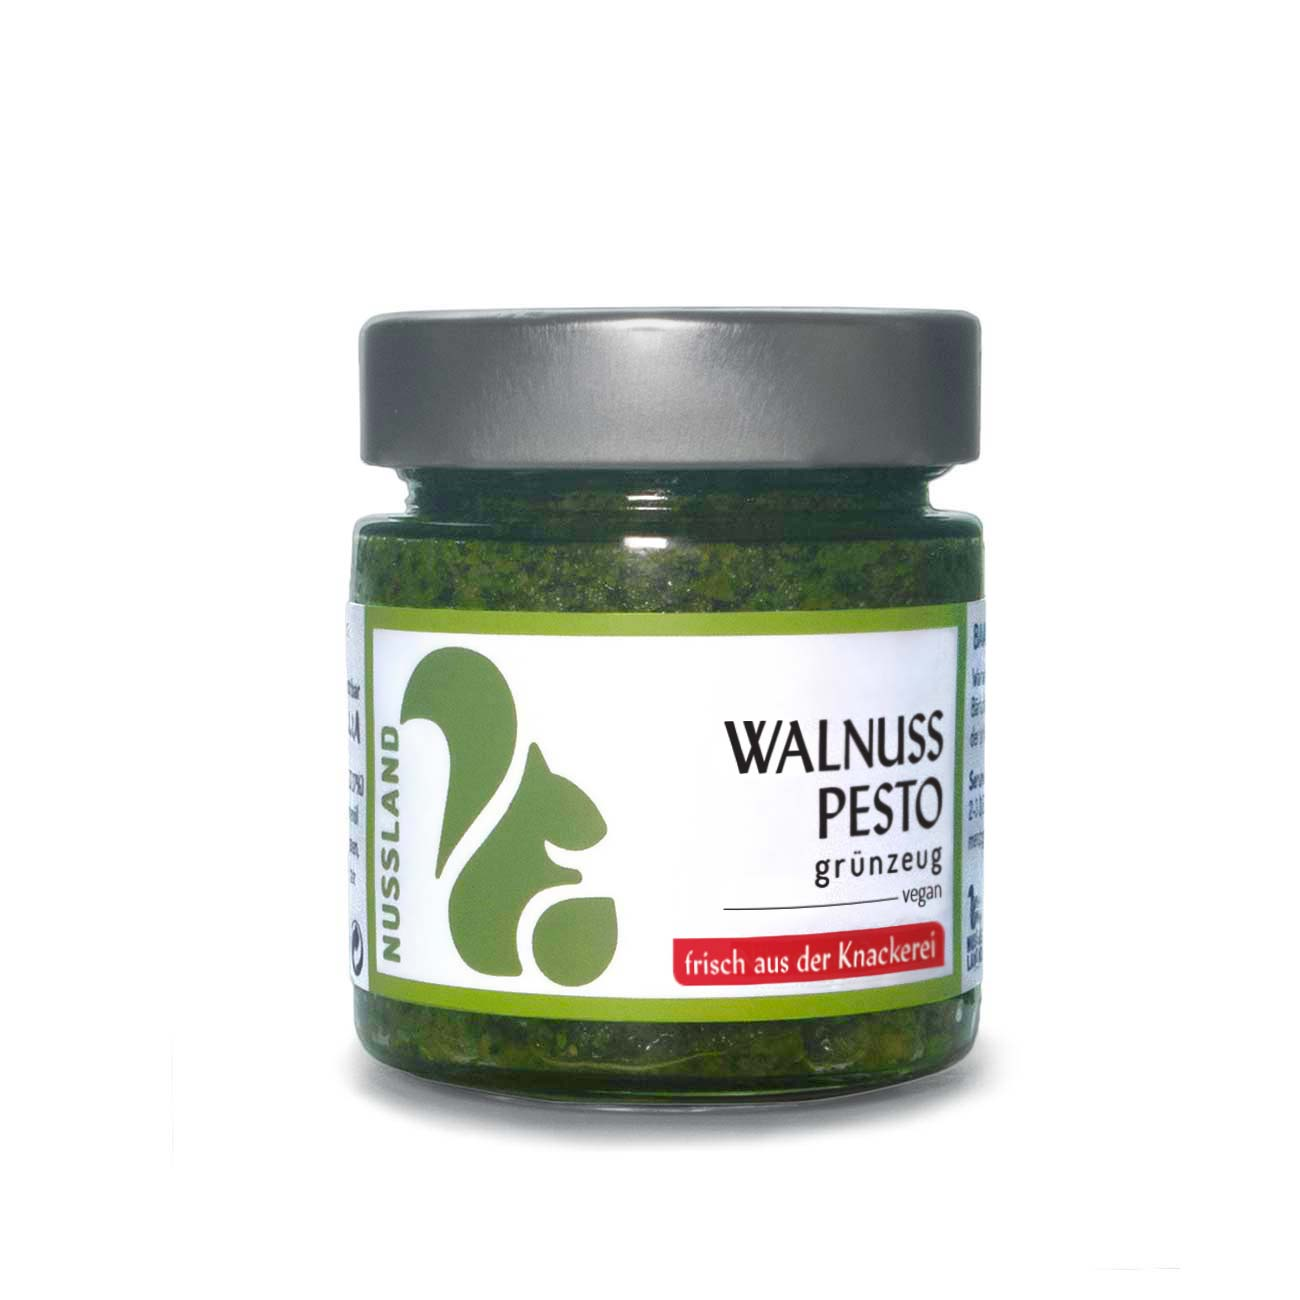 Walnuss-Pesto 'gruenzeug'